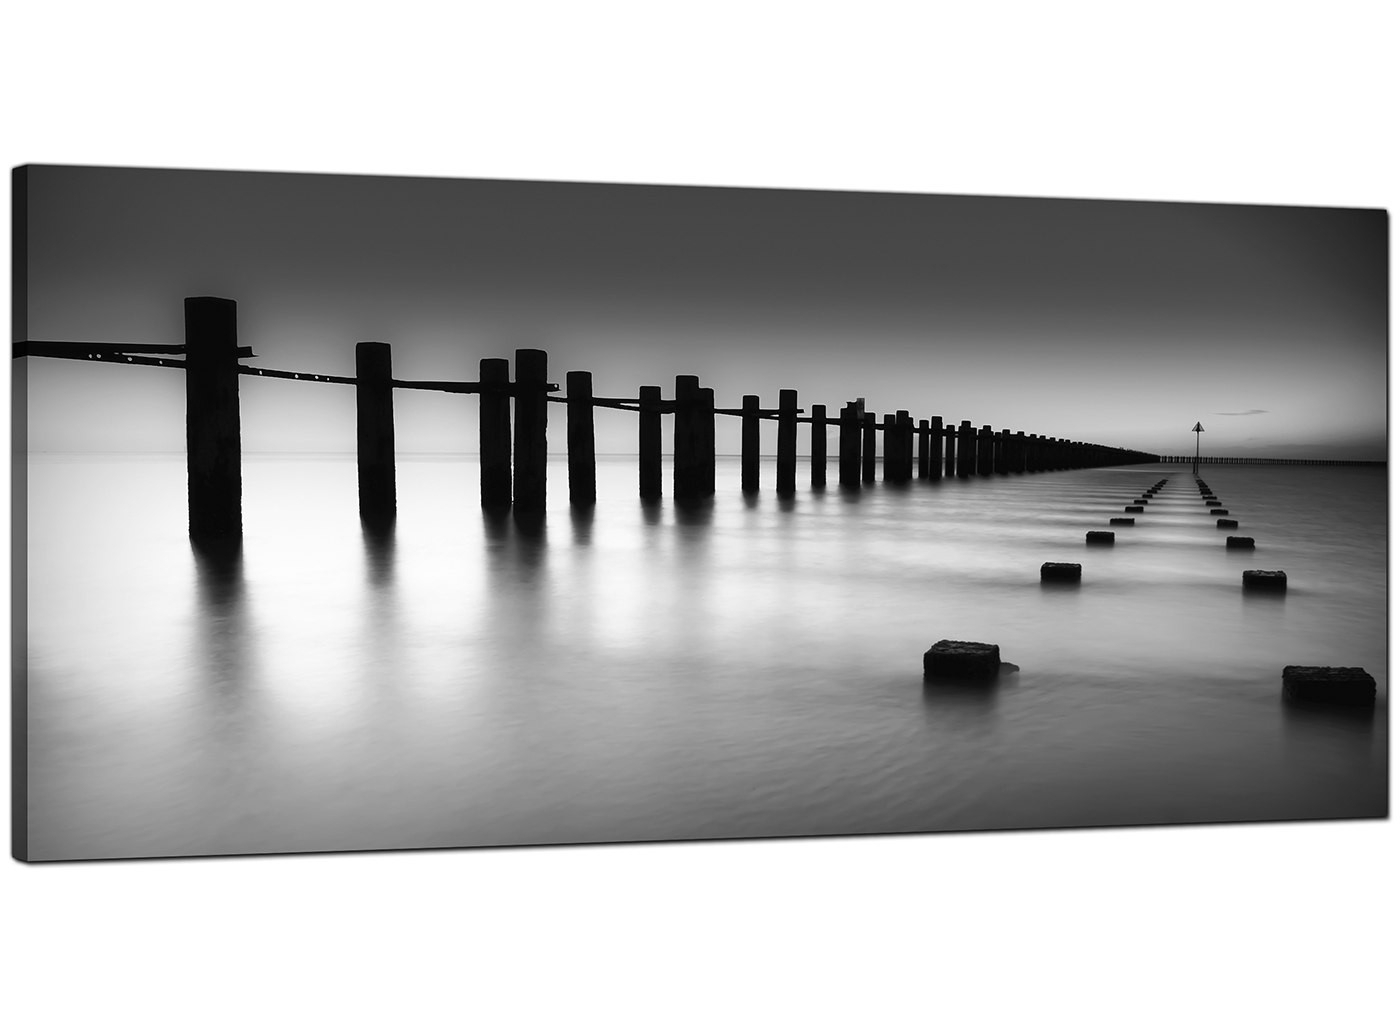 Modern Black And White Canvas Art Of The Sea Throughout Most Current Black And White Canvas Wall Art (View 8 of 15)